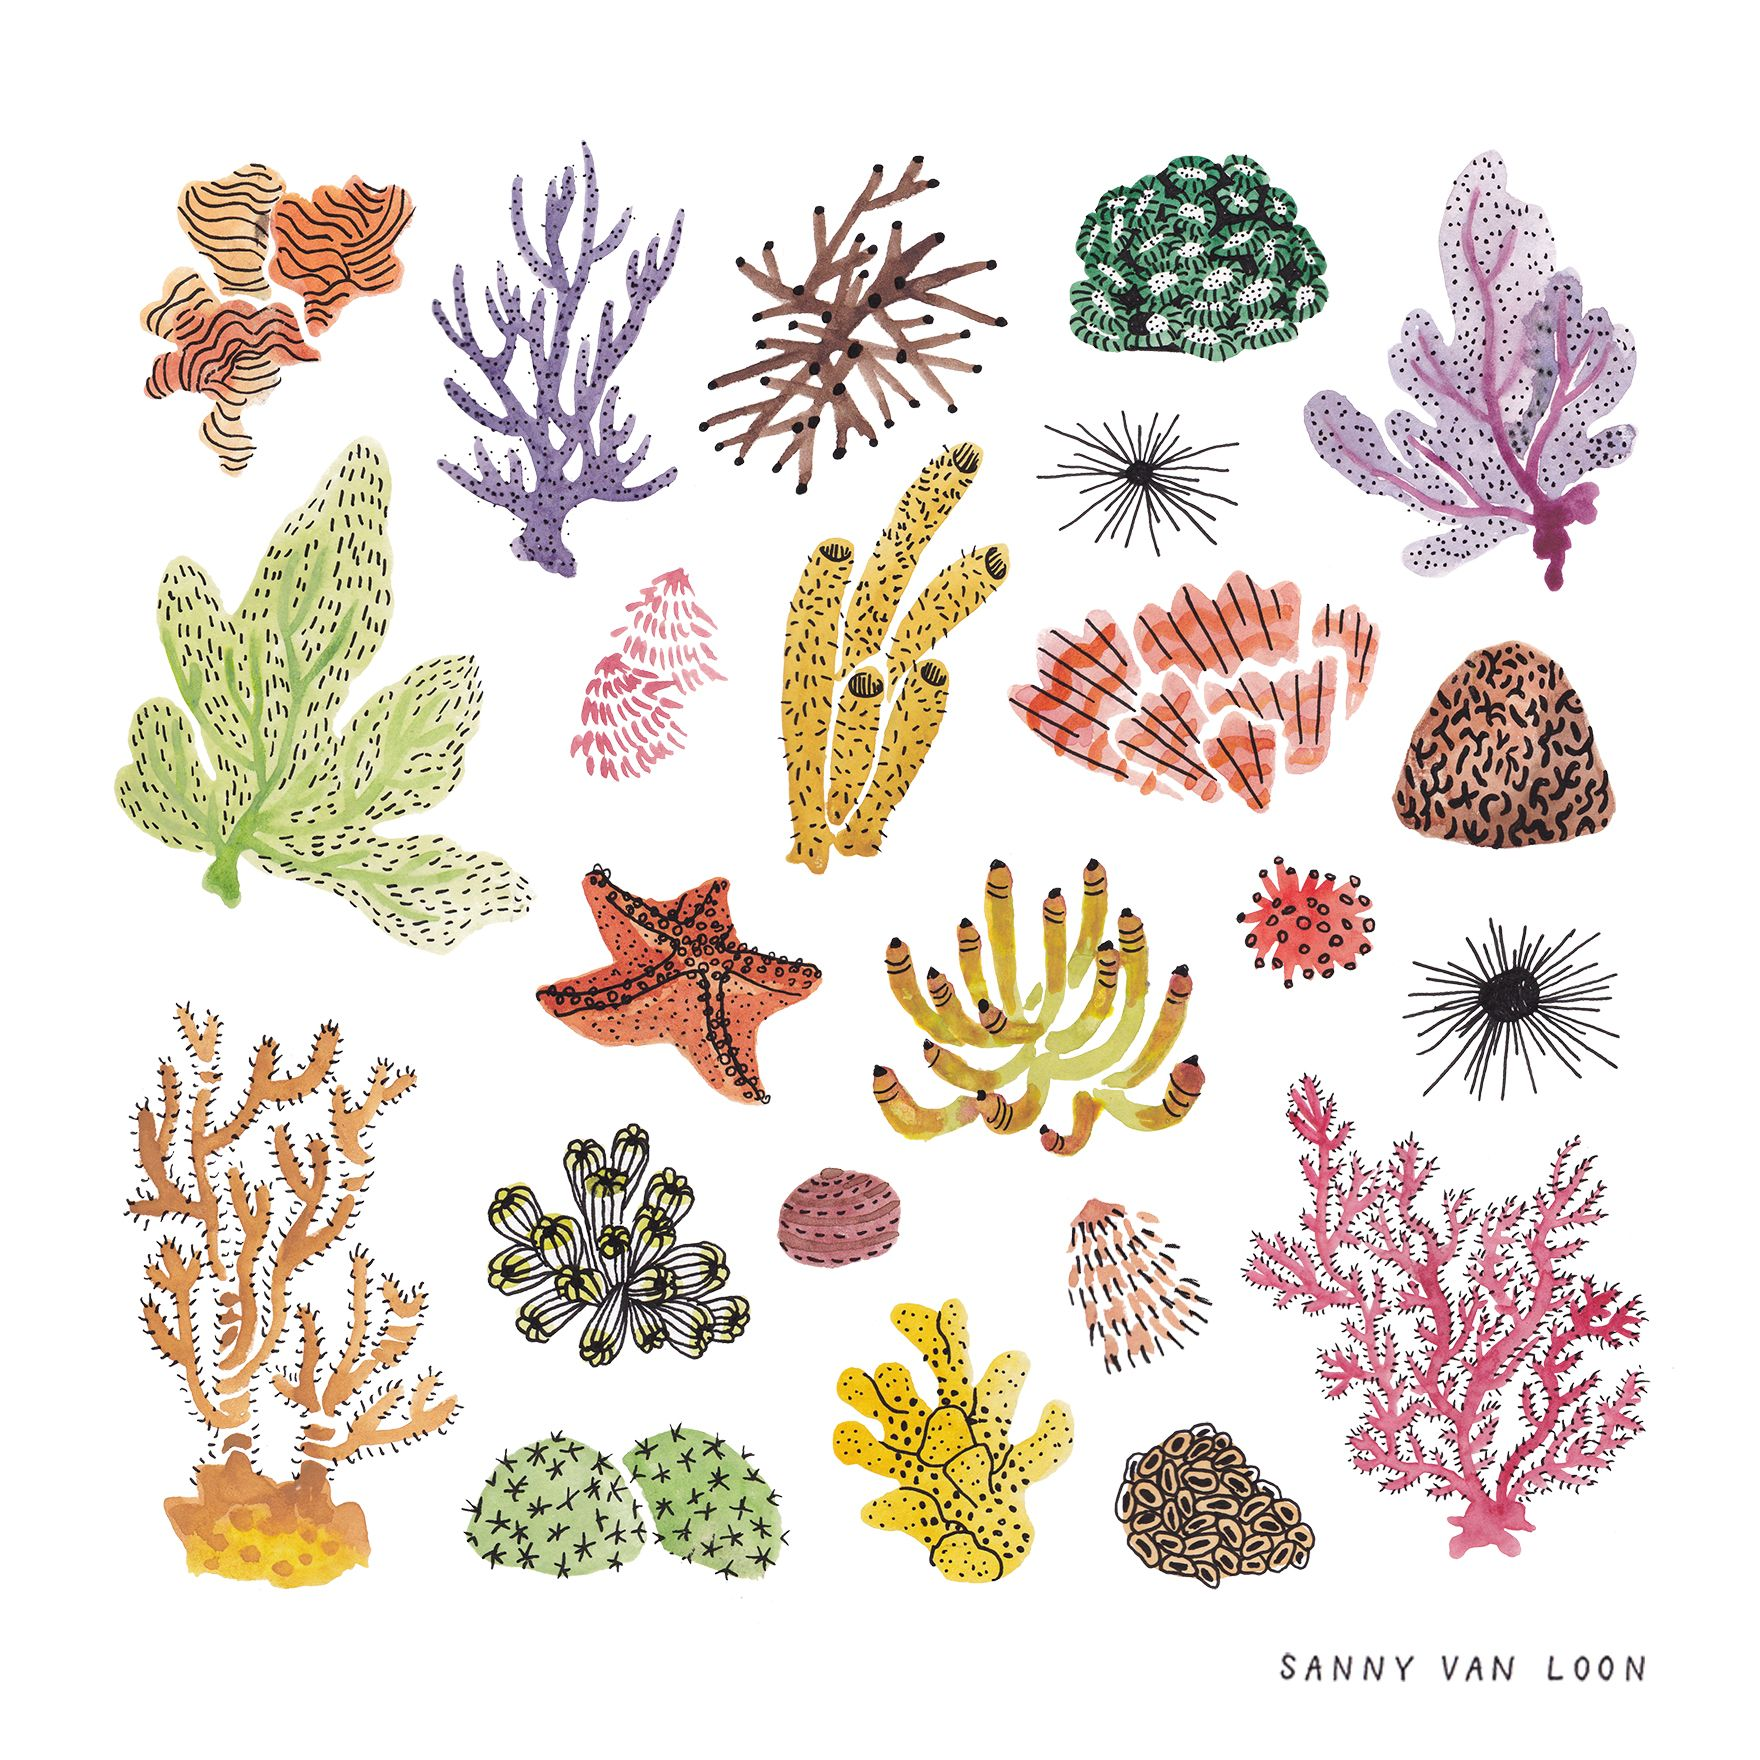 Corals Of The Caribbean Sea By Sanny Van Loon